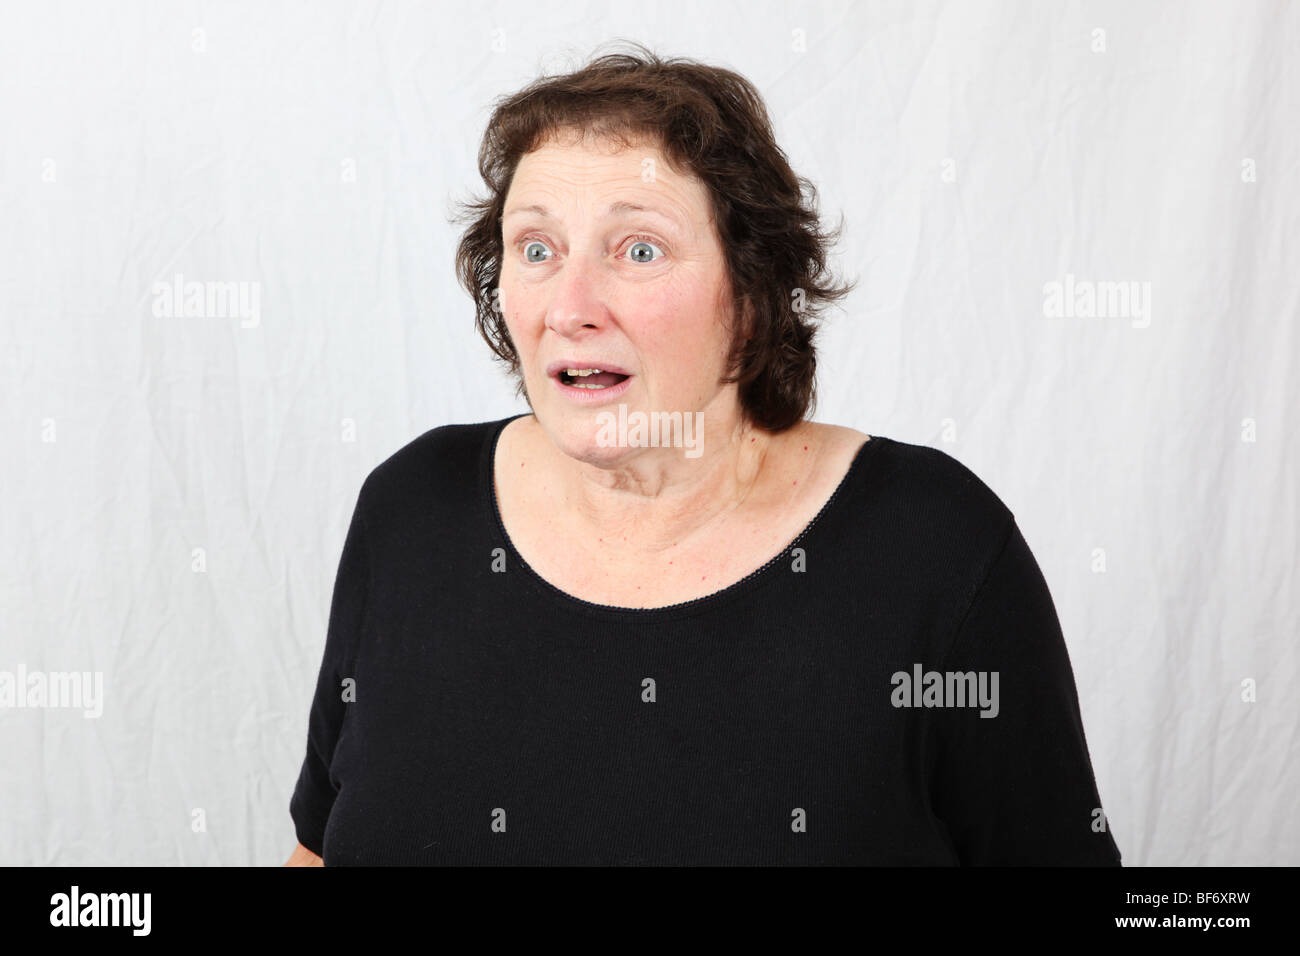 Shocked and startled middle aged woman with wide eyes looking surprised aghast and stunned - Stock Image